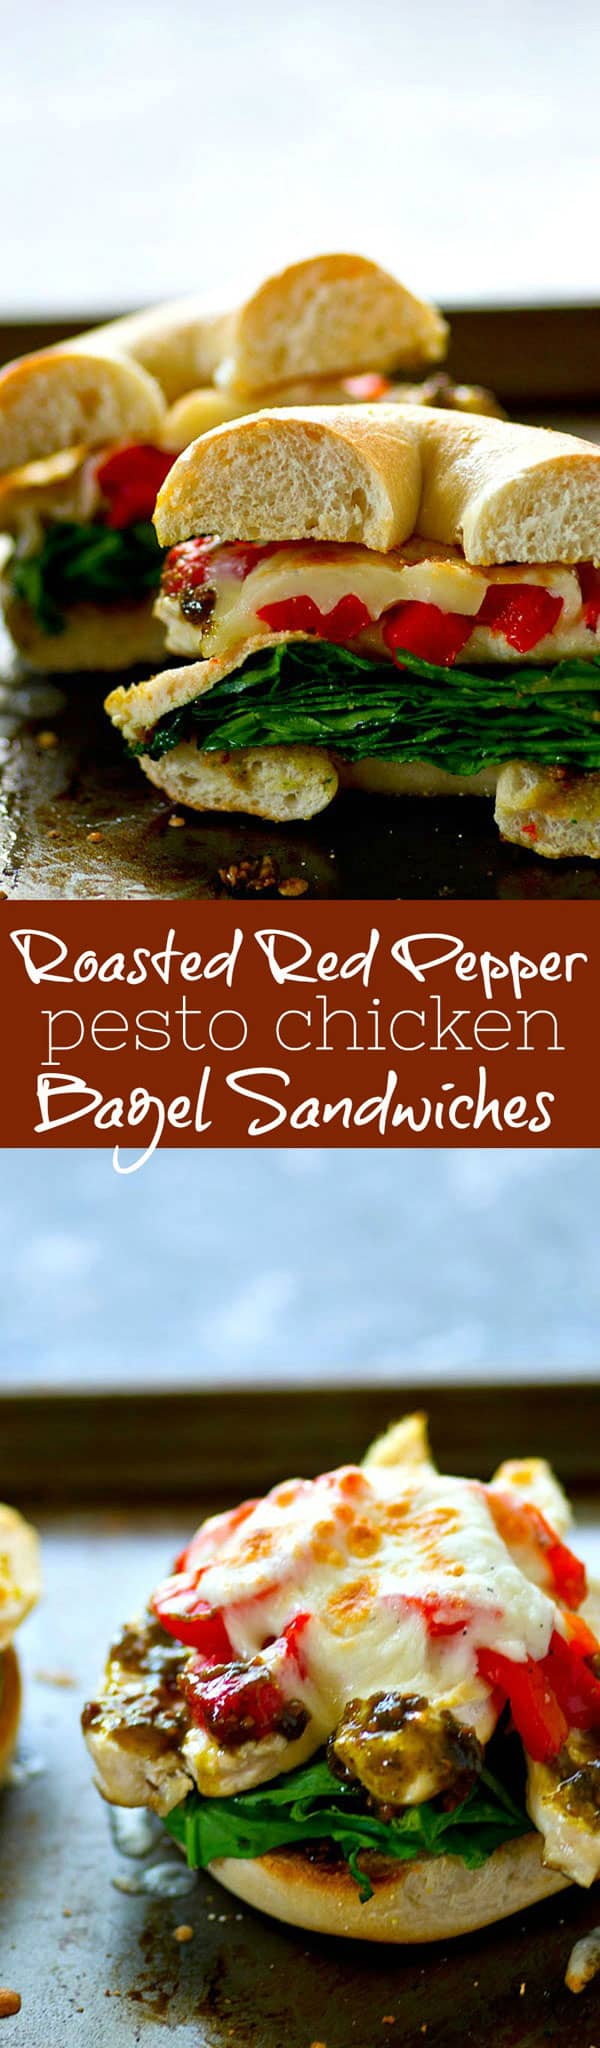 Never spend money on a bagel sandwich again! These roasted red pepper pesto chicken bagel sandwiches are packed with SO much flavorful goodness and the easiest grab-and-go lunch!